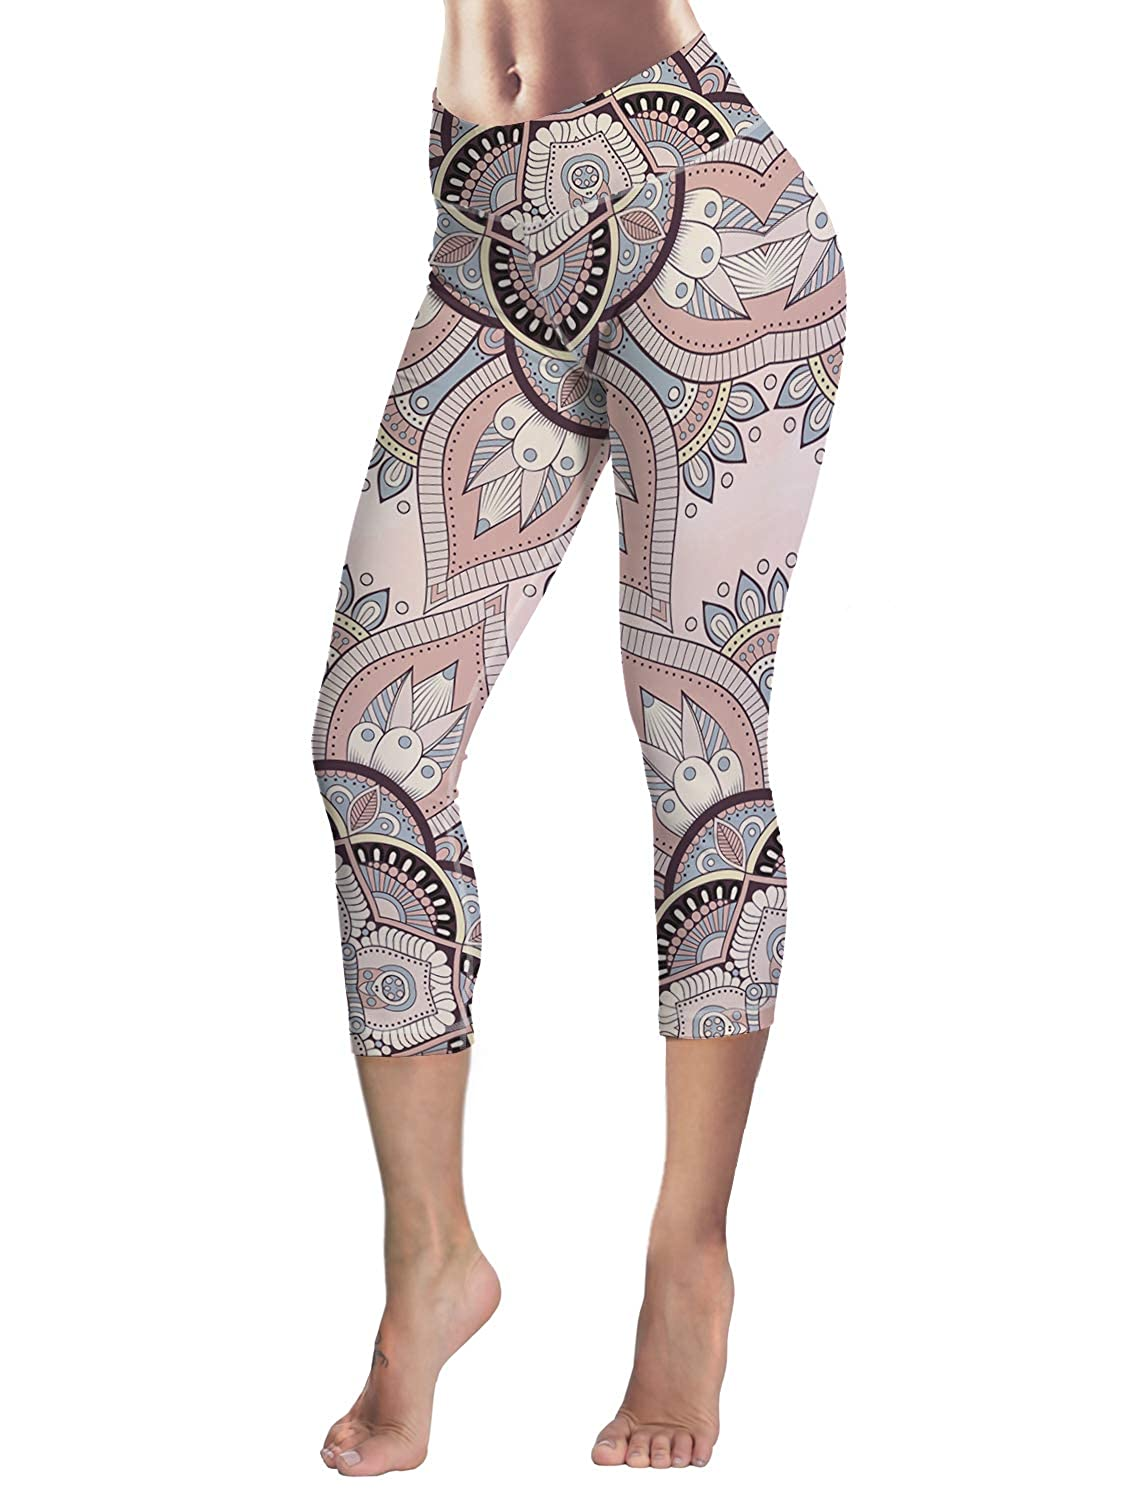 India11 Queen Area Women's Mandala Floral Print Fitness 4 Way Stretch Yoga Capris Leggings